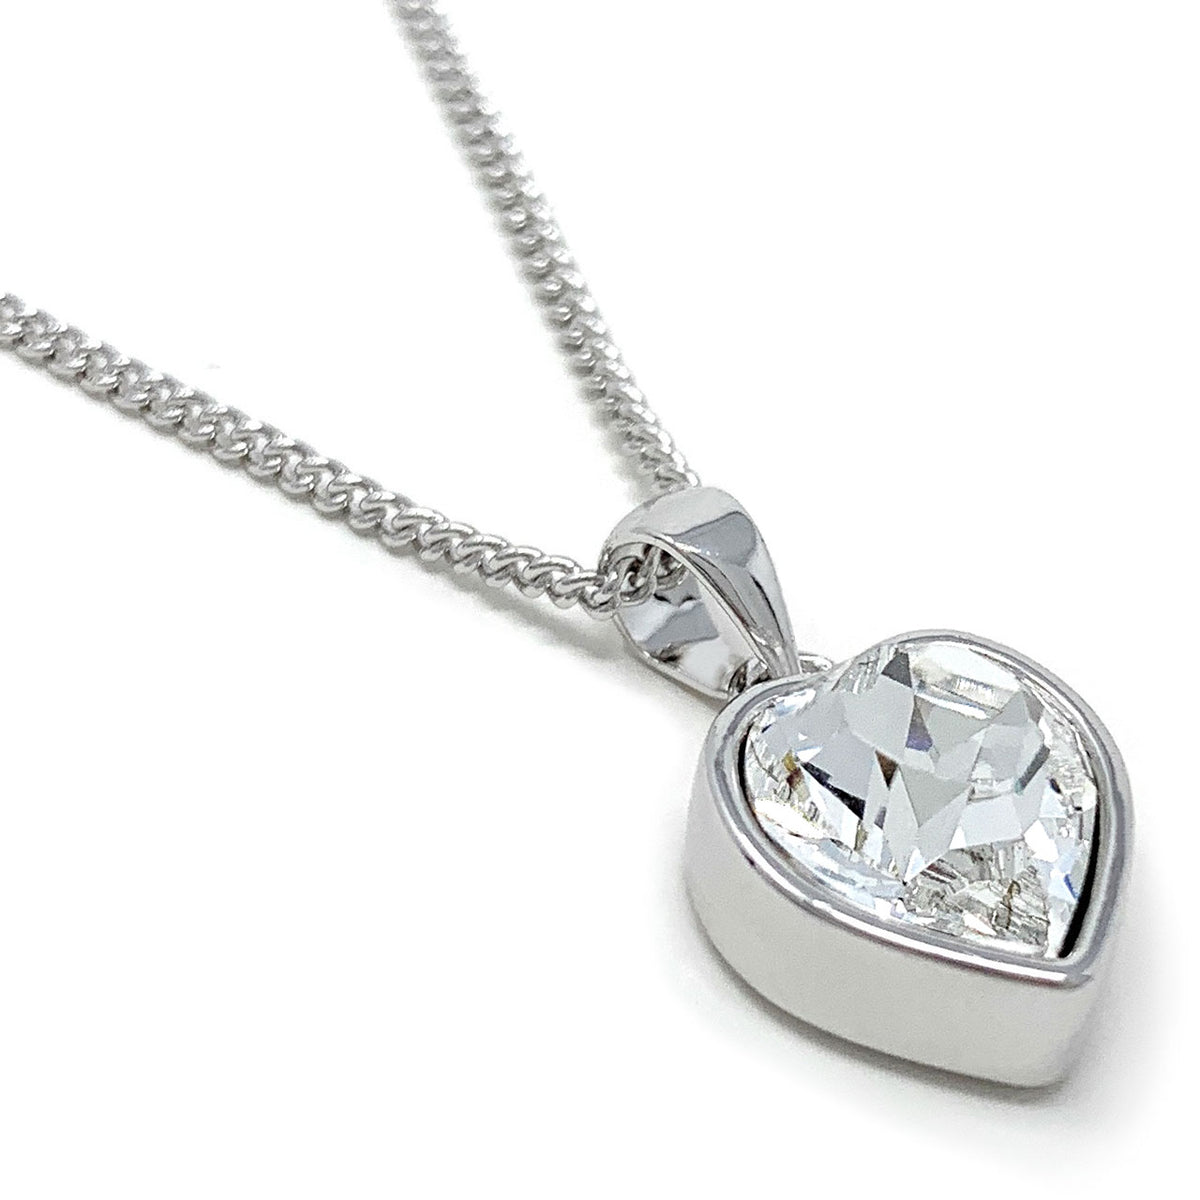 Lucia Pendant Necklace with White Clear Heart Crystals from Swarovski Silver Toned Rhodium Plated - Ed Heart